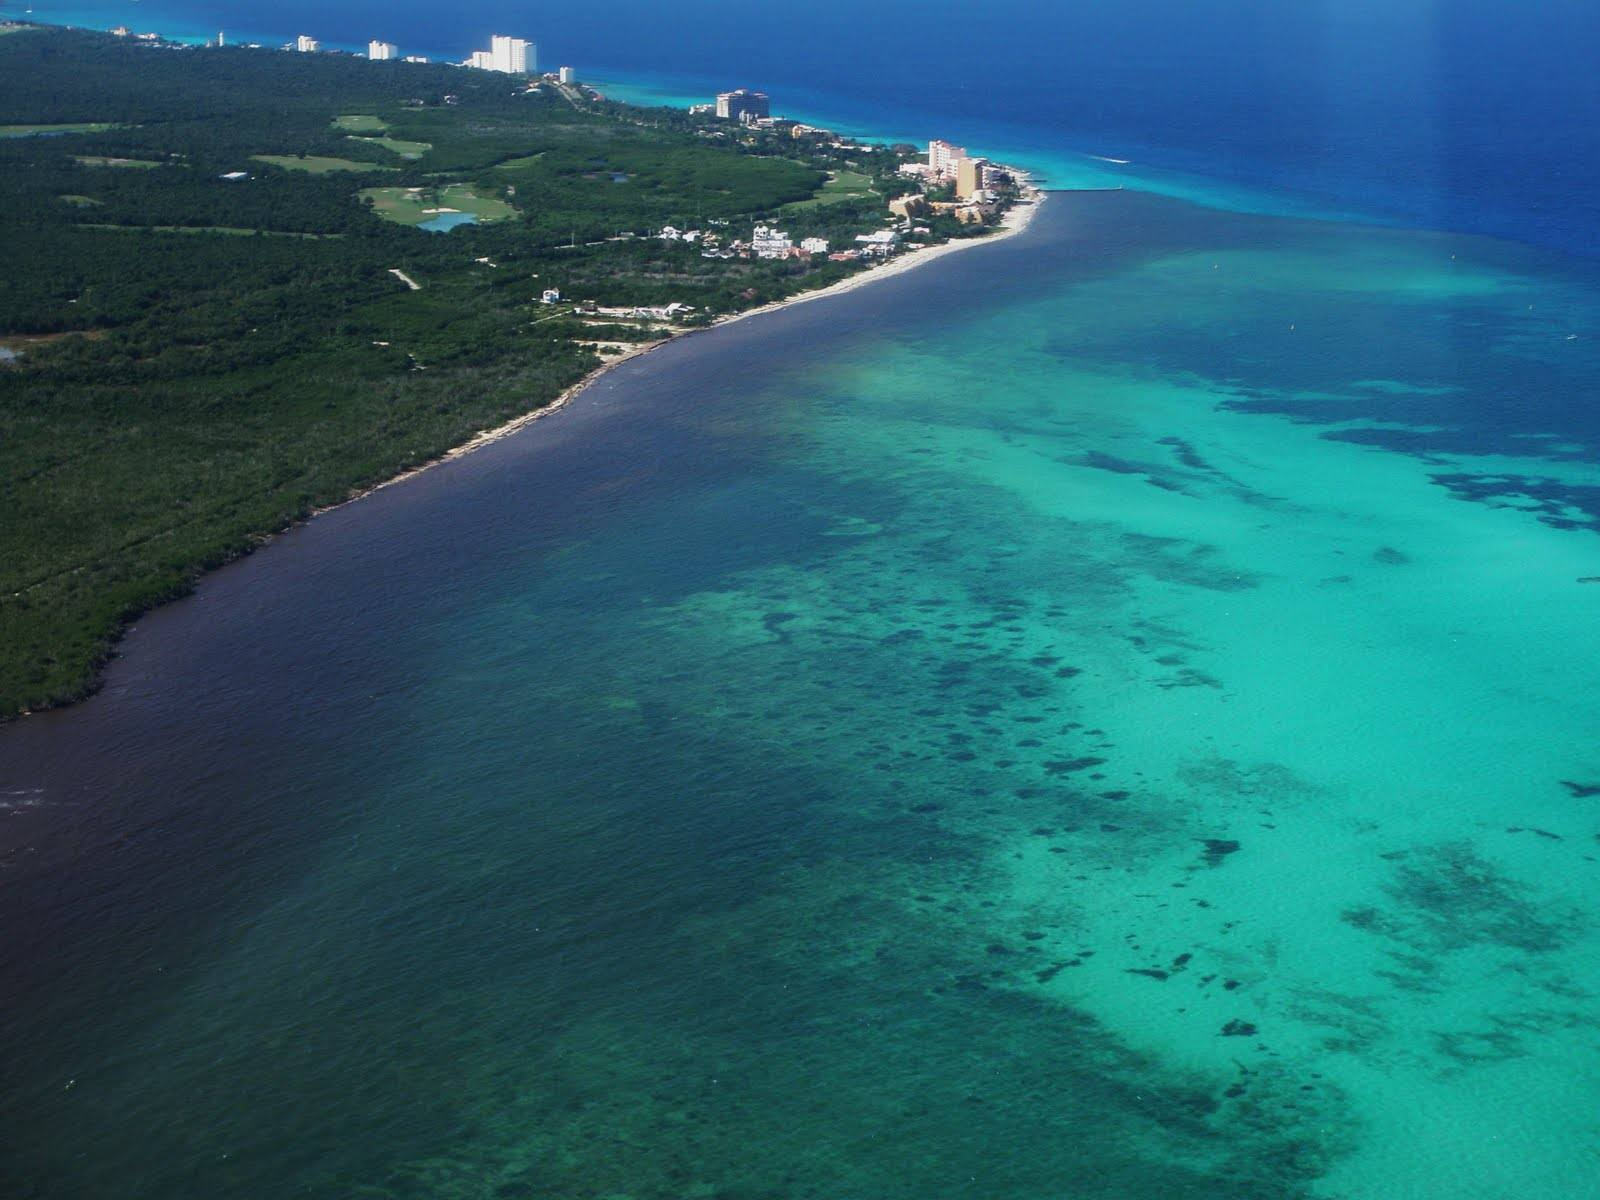 An aerial view of the Cozumel Island coastline in the Mexican Caribbean